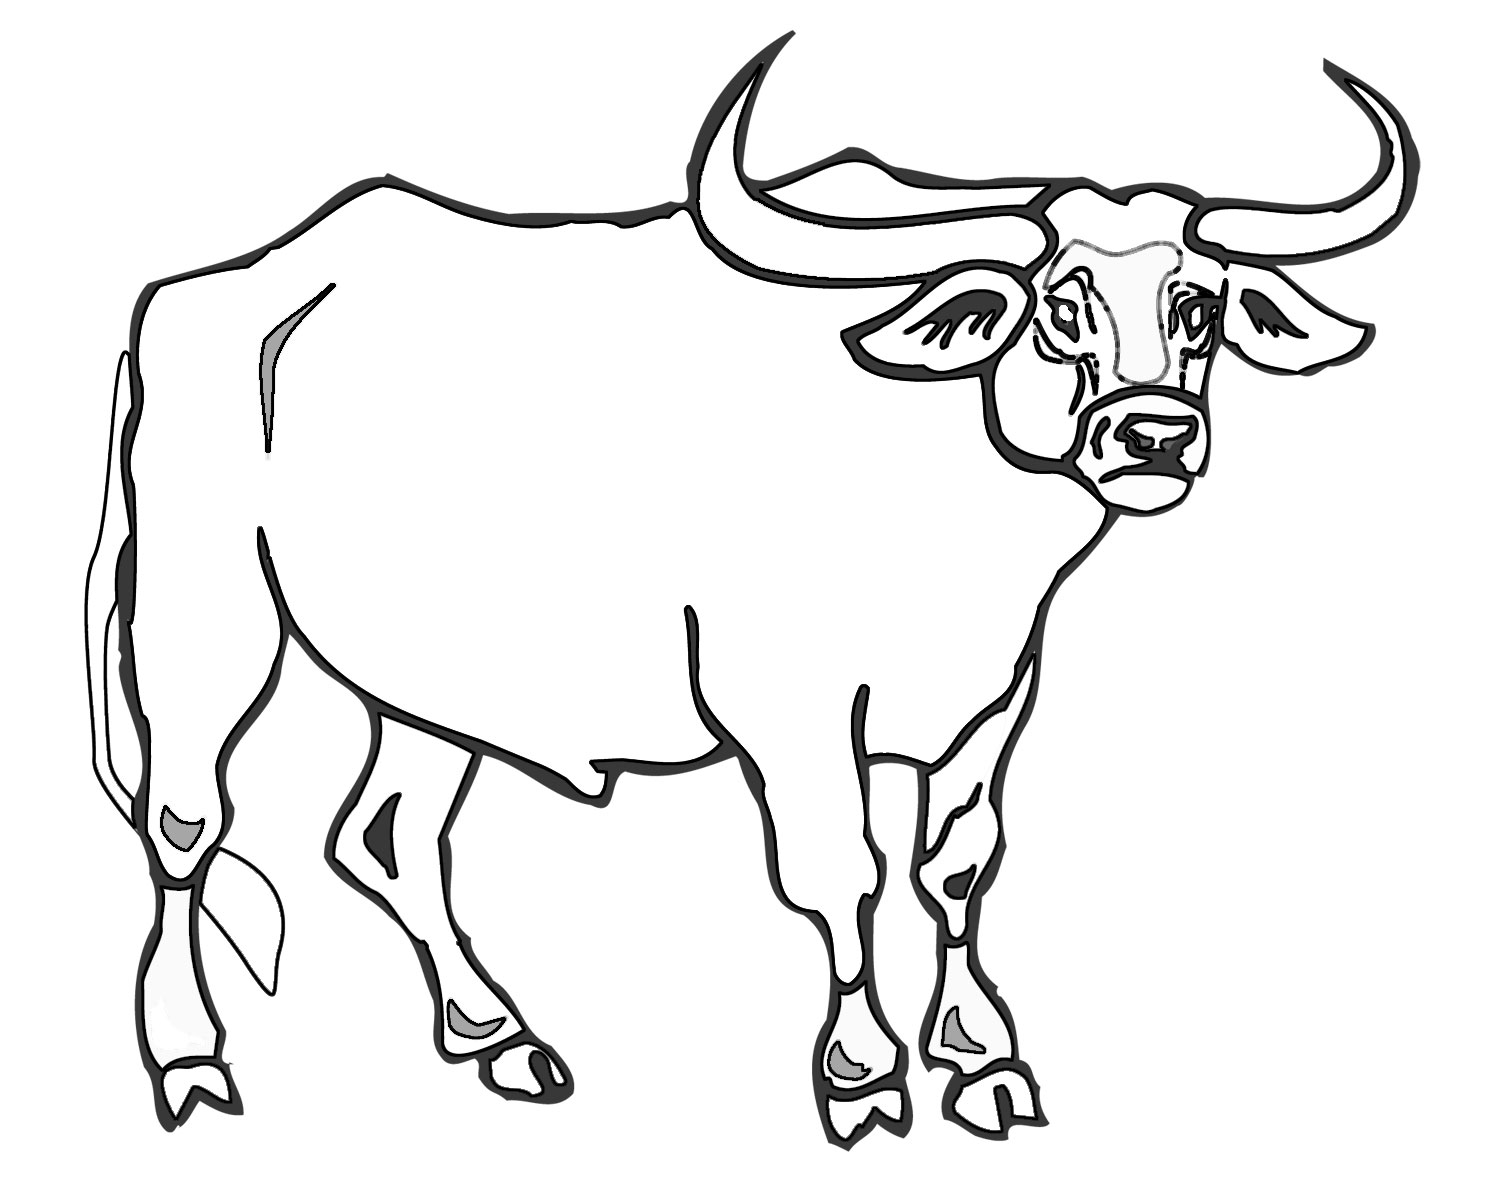 1500x1200 Bull Coloring Pages To Print Bull Coloring Pages Printable